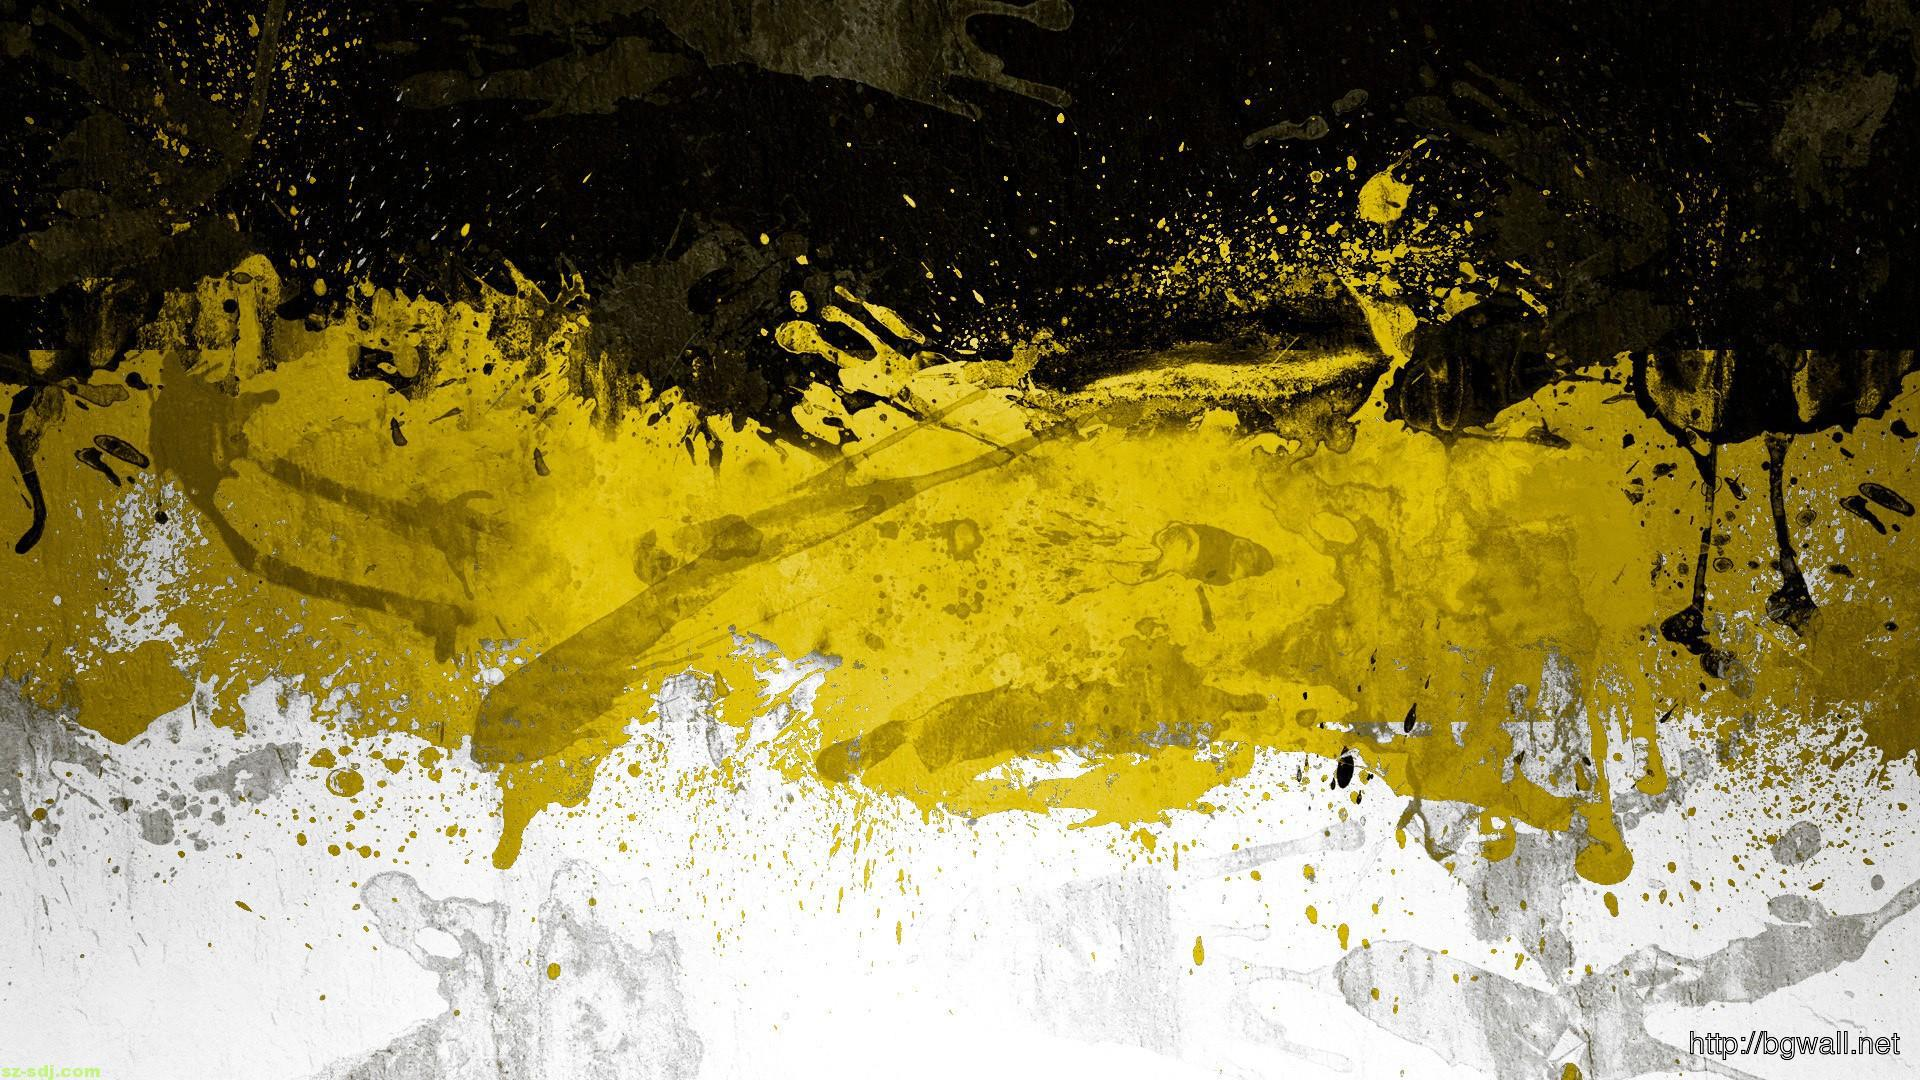 Black Yellow Abstract Wallpaper Background Wallpaper Hd